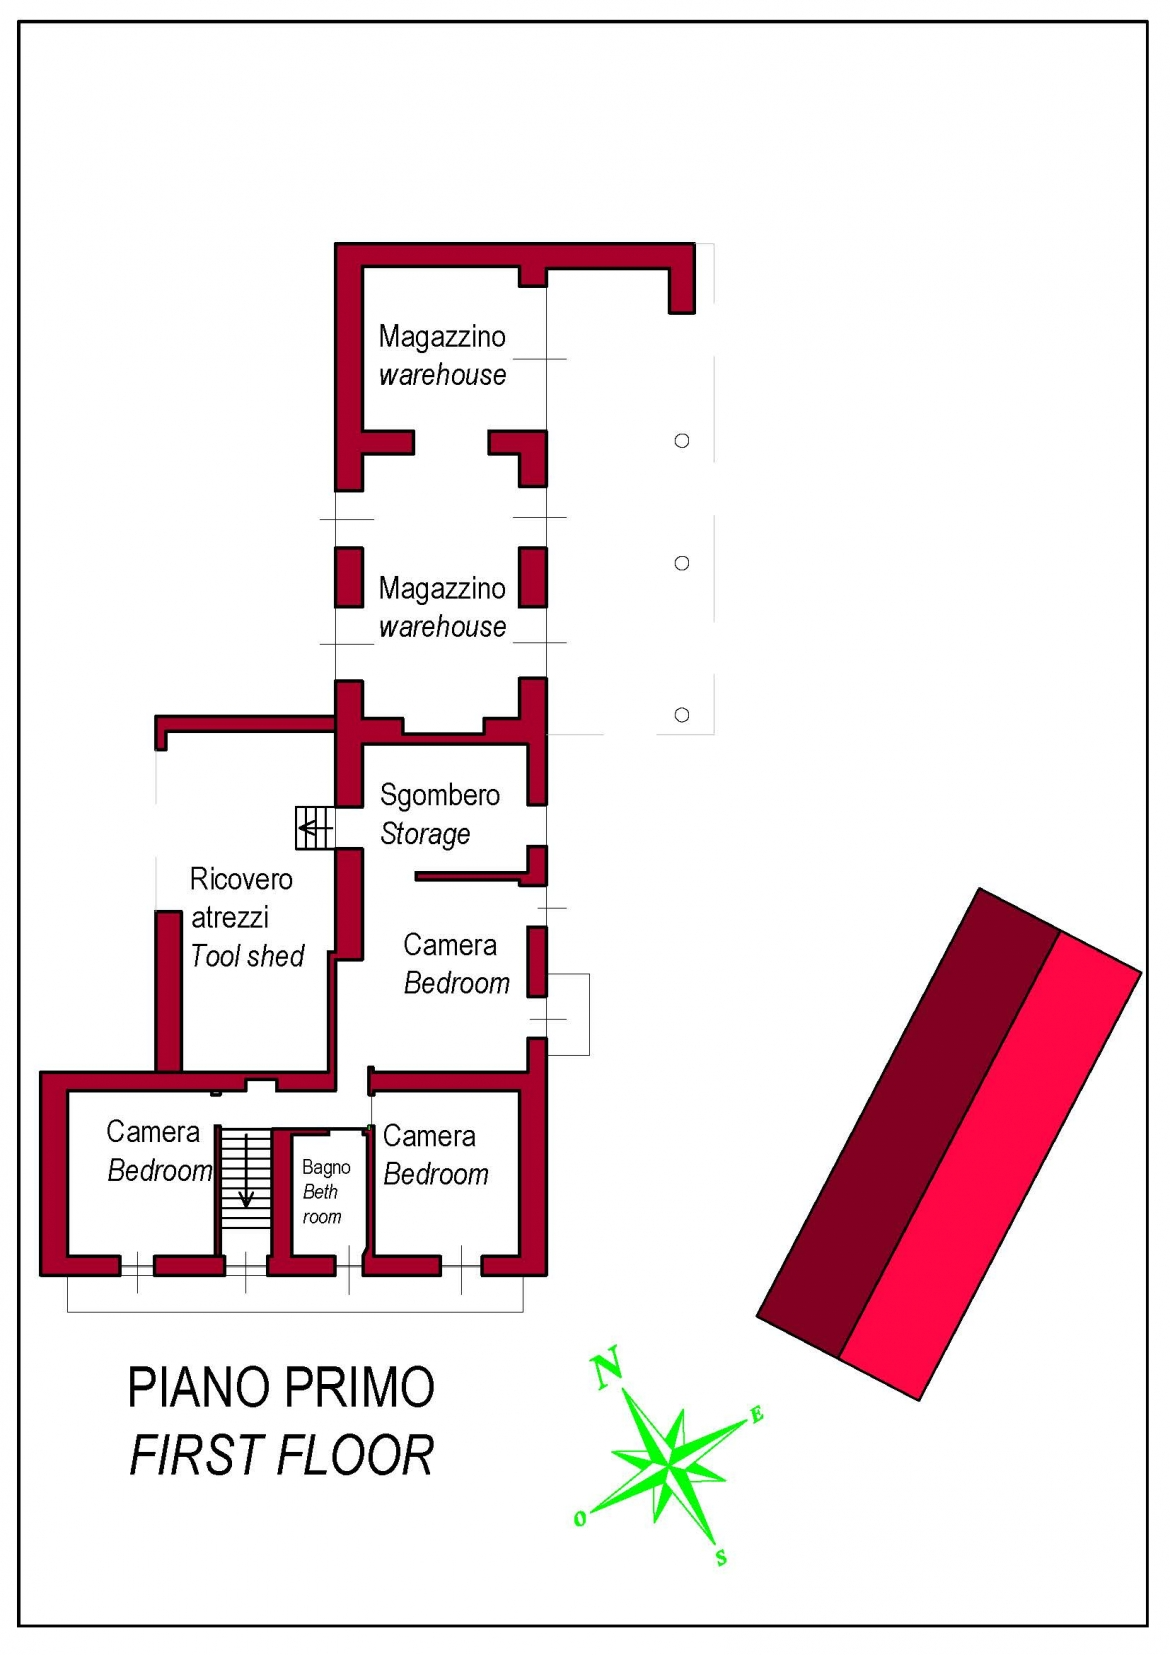 1905-PIANTA-PRIMO-P-FIRST-FLOOR.jpg